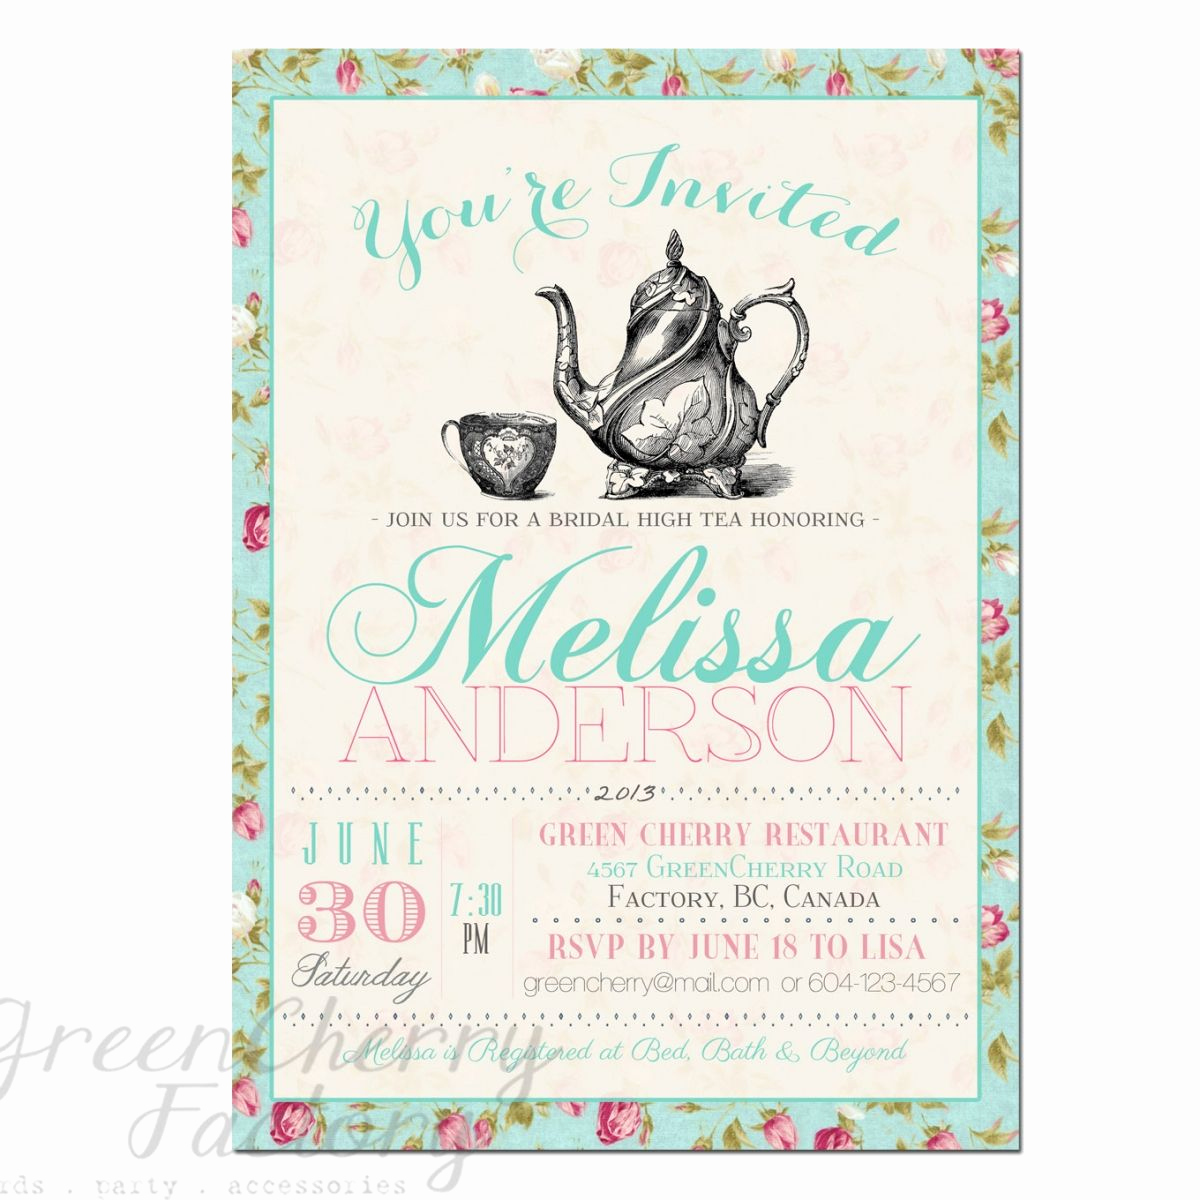 Tea Party Invitation Templates Lovely Tea Party Invitation Templates to Print